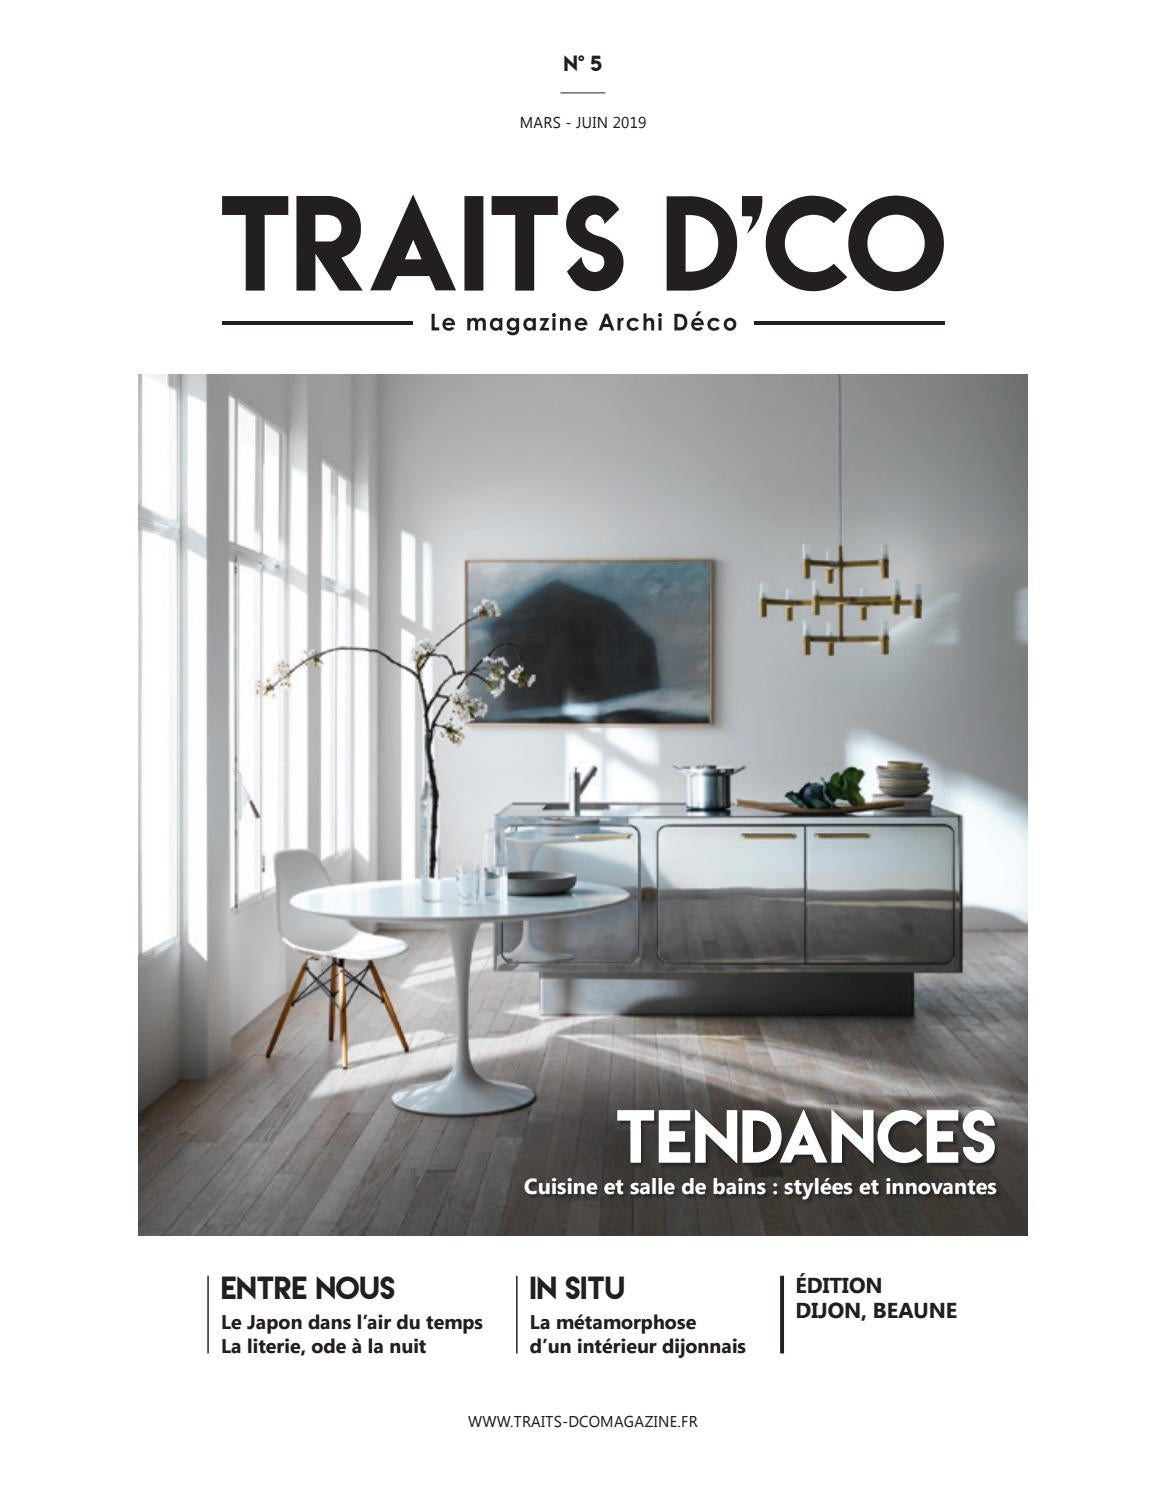 Literie Dijon Traits Dco Magazine Dijon Beaune N7